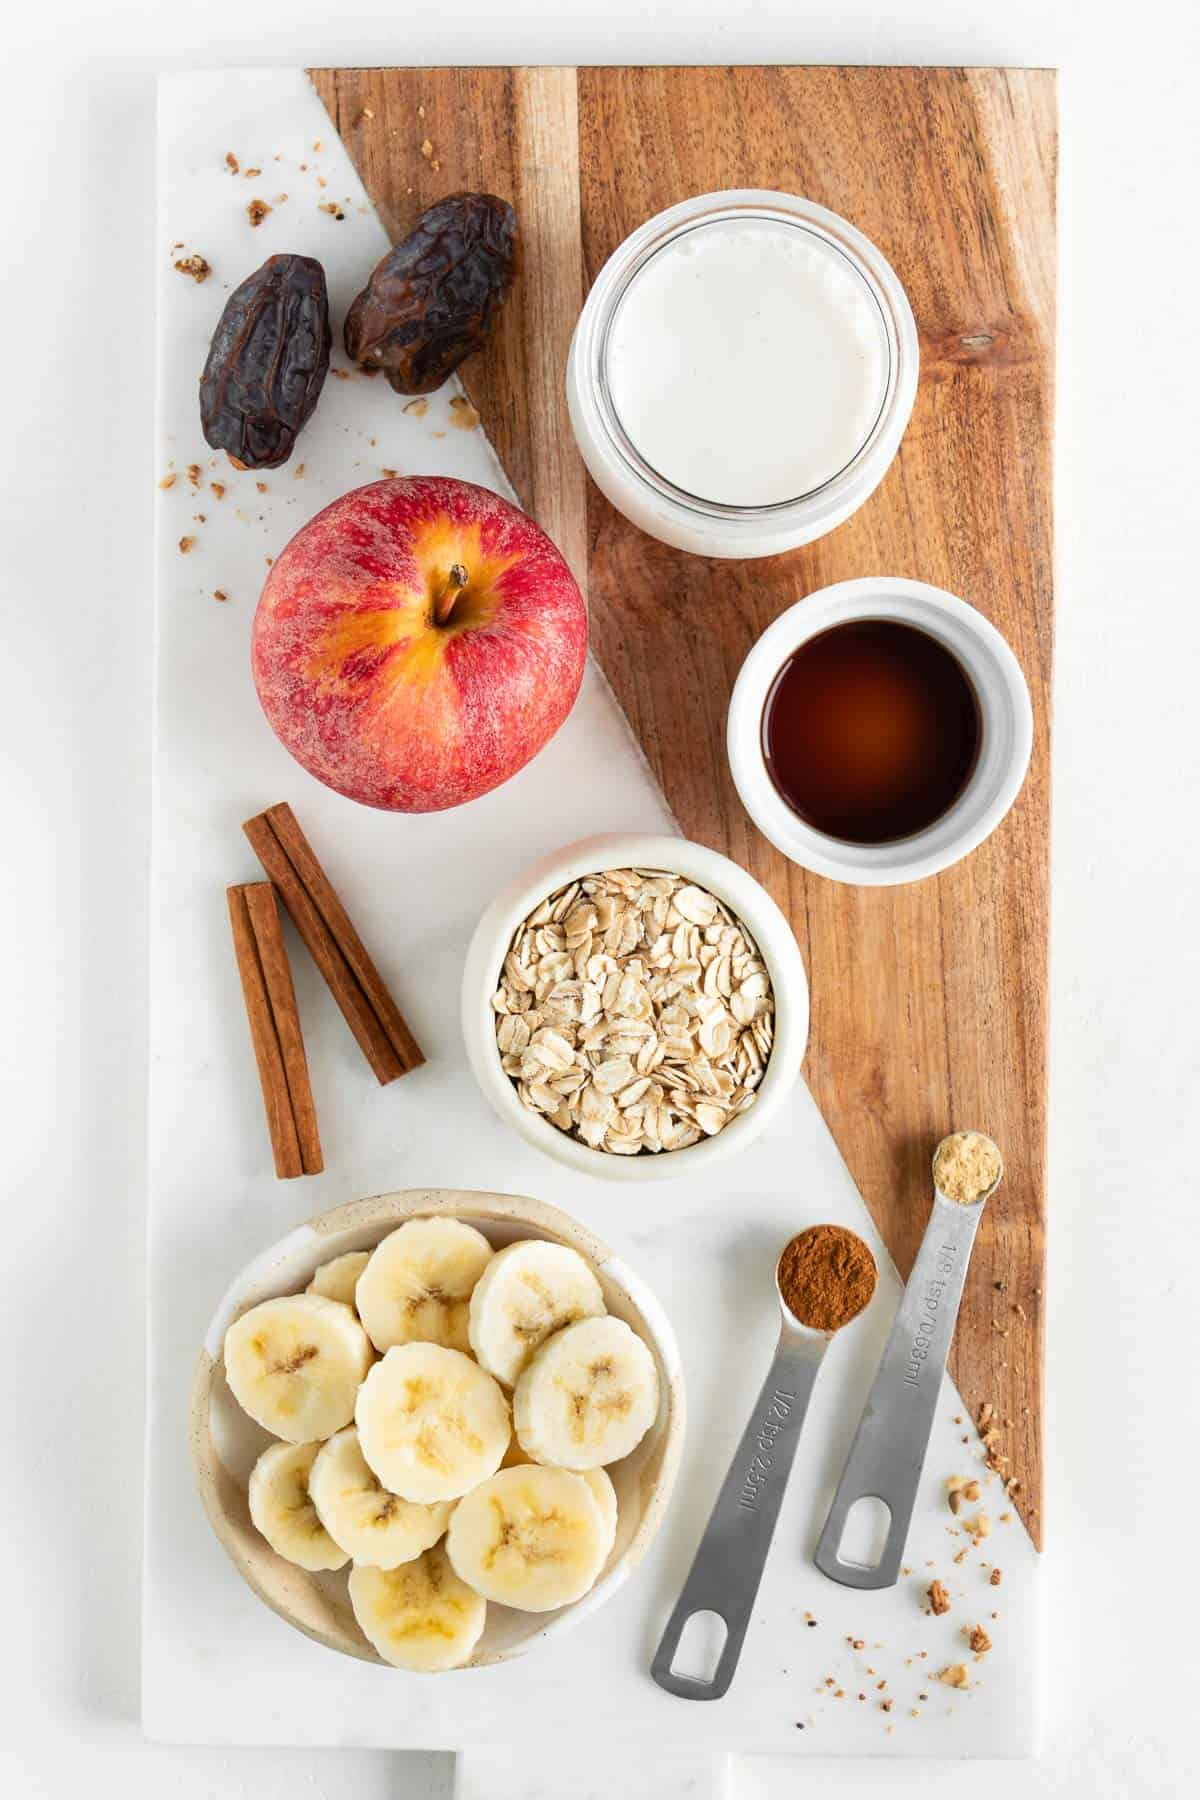 a marble board topped with an apple, oats, sliced banana, oat milk, medjool dates, cinnamon sticks, and vanilla extract